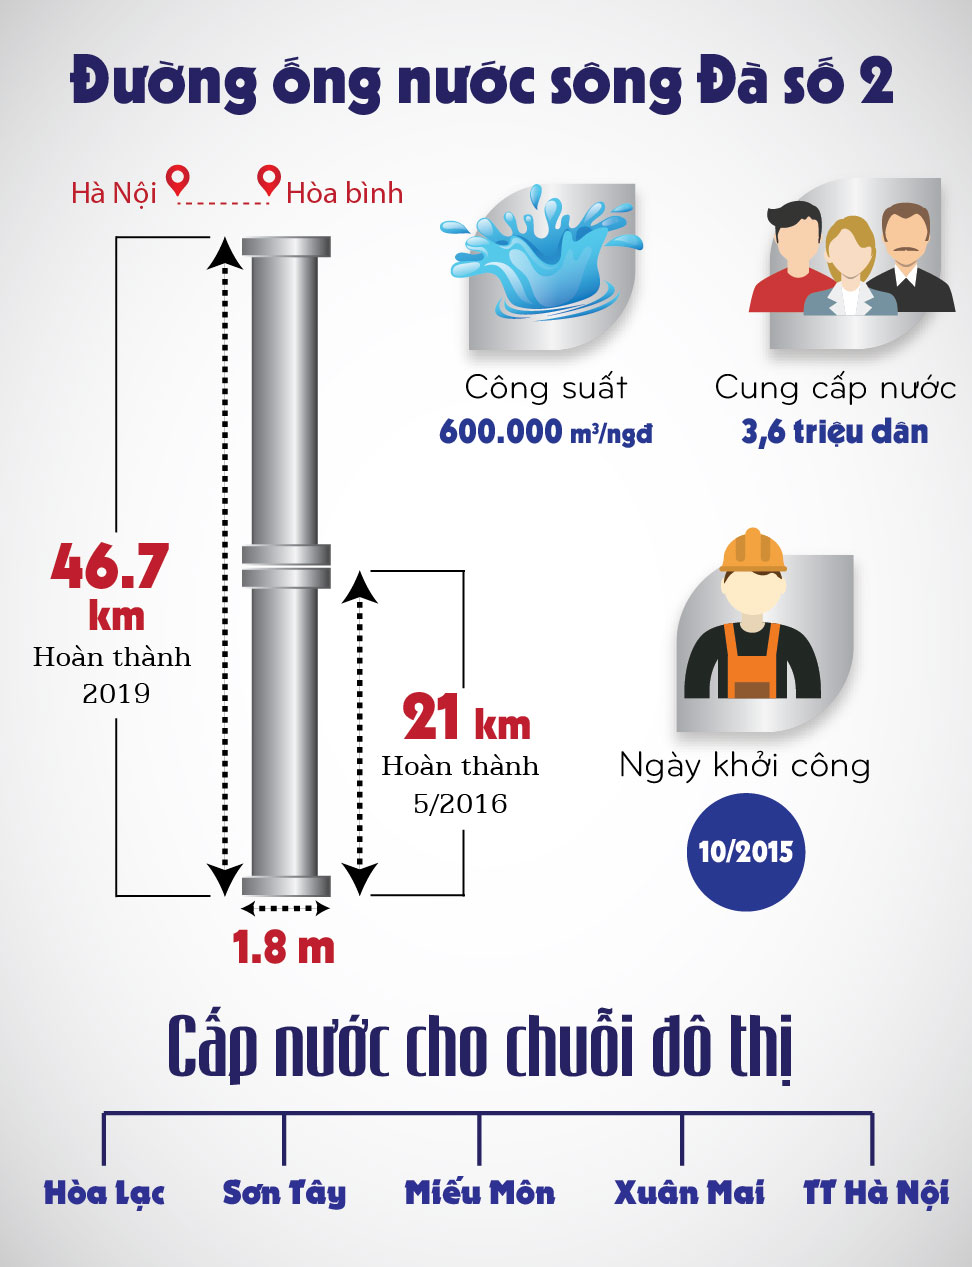 infographic: duong ong nuoc song da 2 quan trong nhu the nao? hinh anh 2